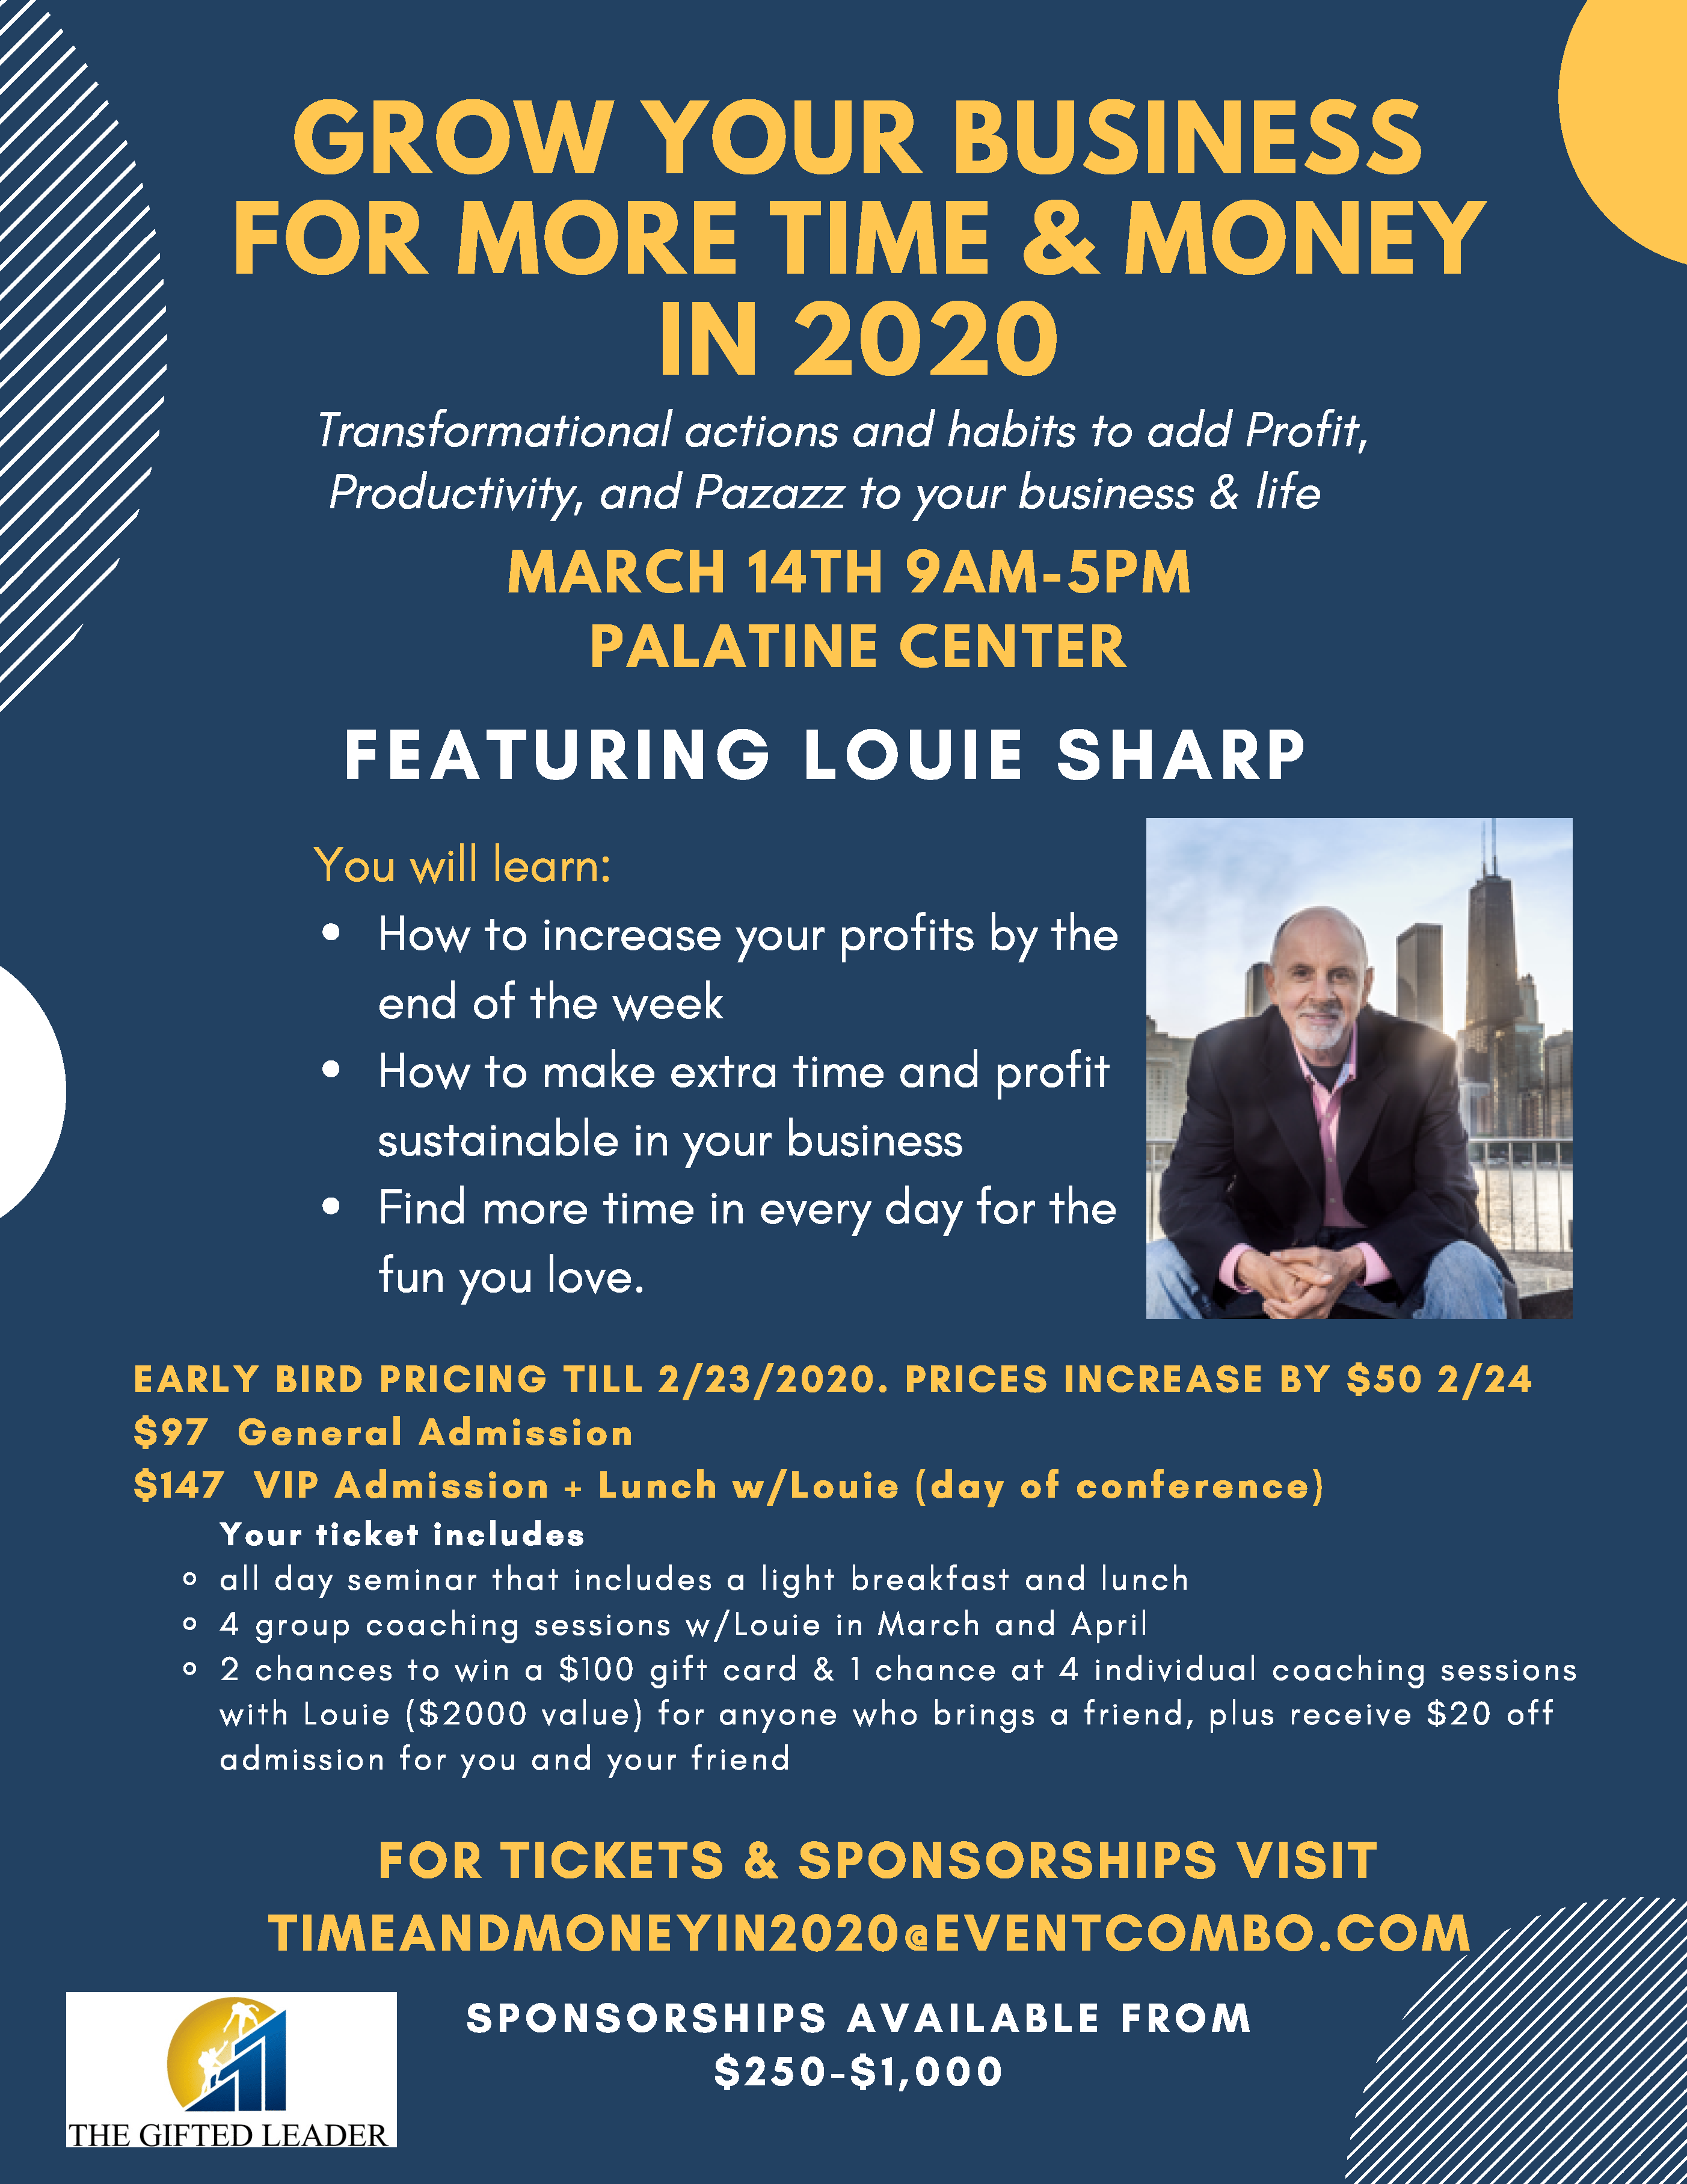 Grow your Business for more Time and Money in 2020 with Louie Sharp!